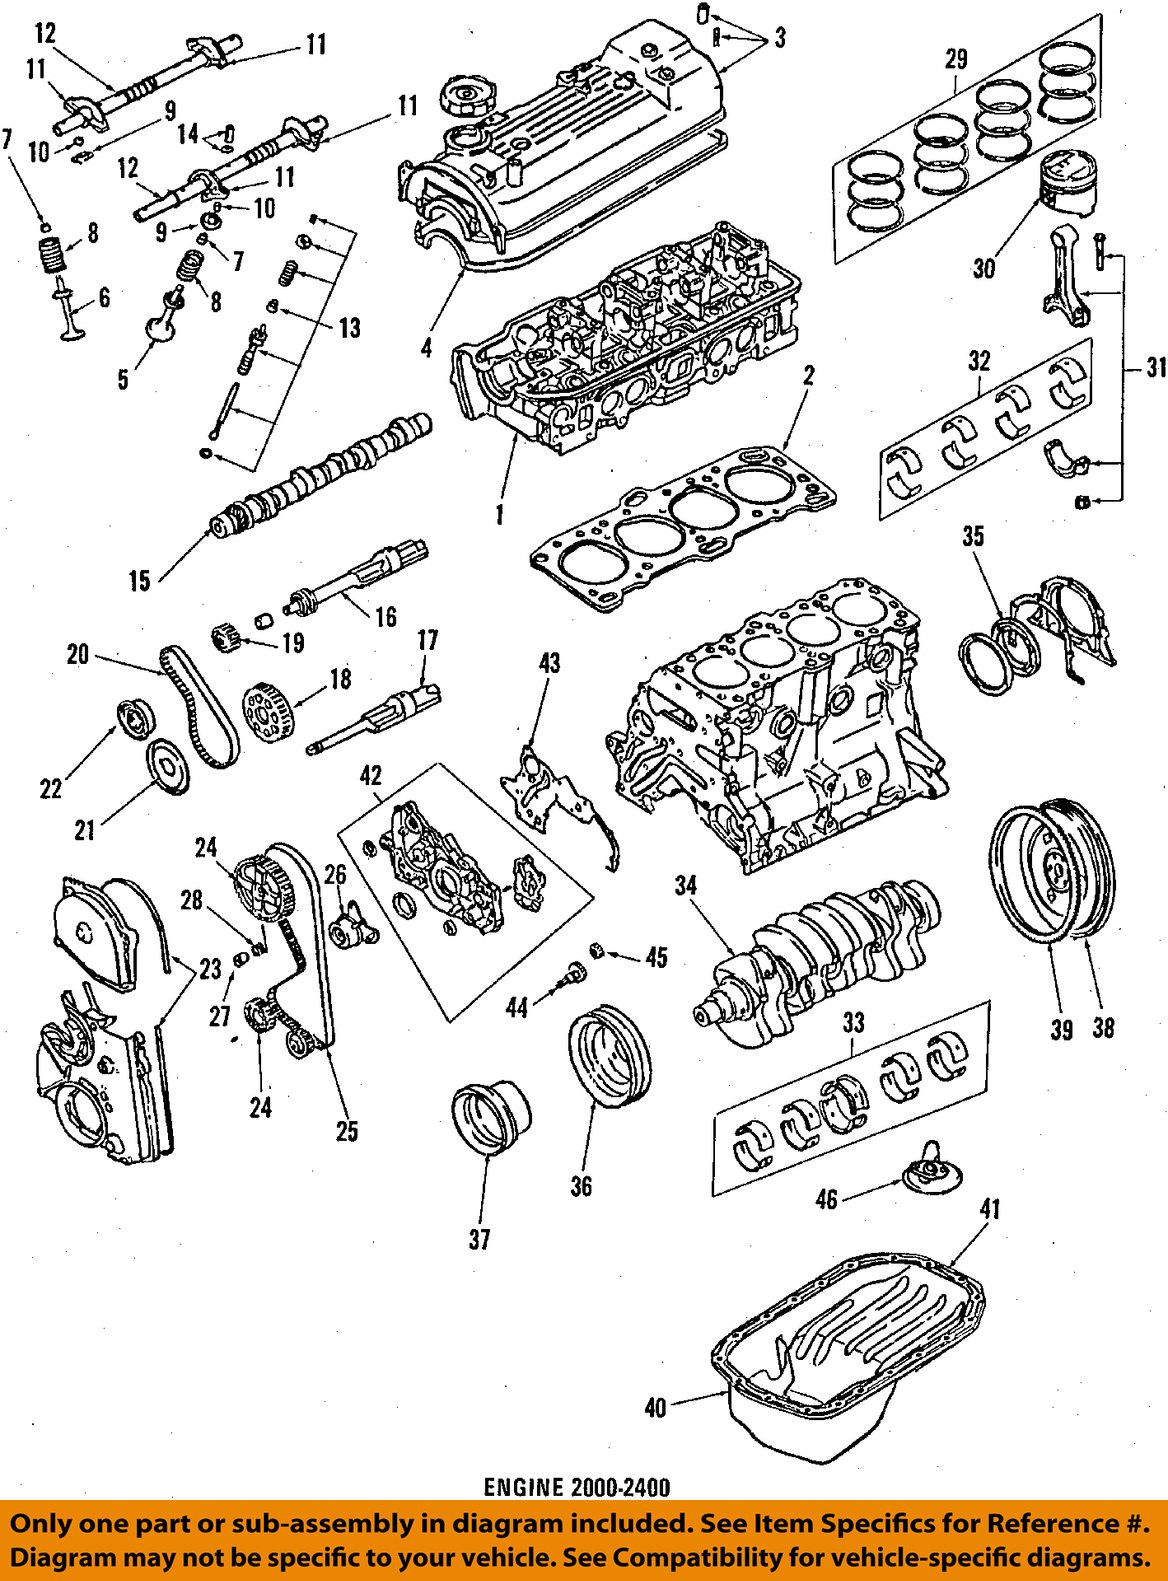 Mitsubishi Mighty Max Parts Diagram Just Another Wiring Blog Raider Engine Purchase Oem 84 86 Crankshaft Pulley Md074531 Rh 2040 Com